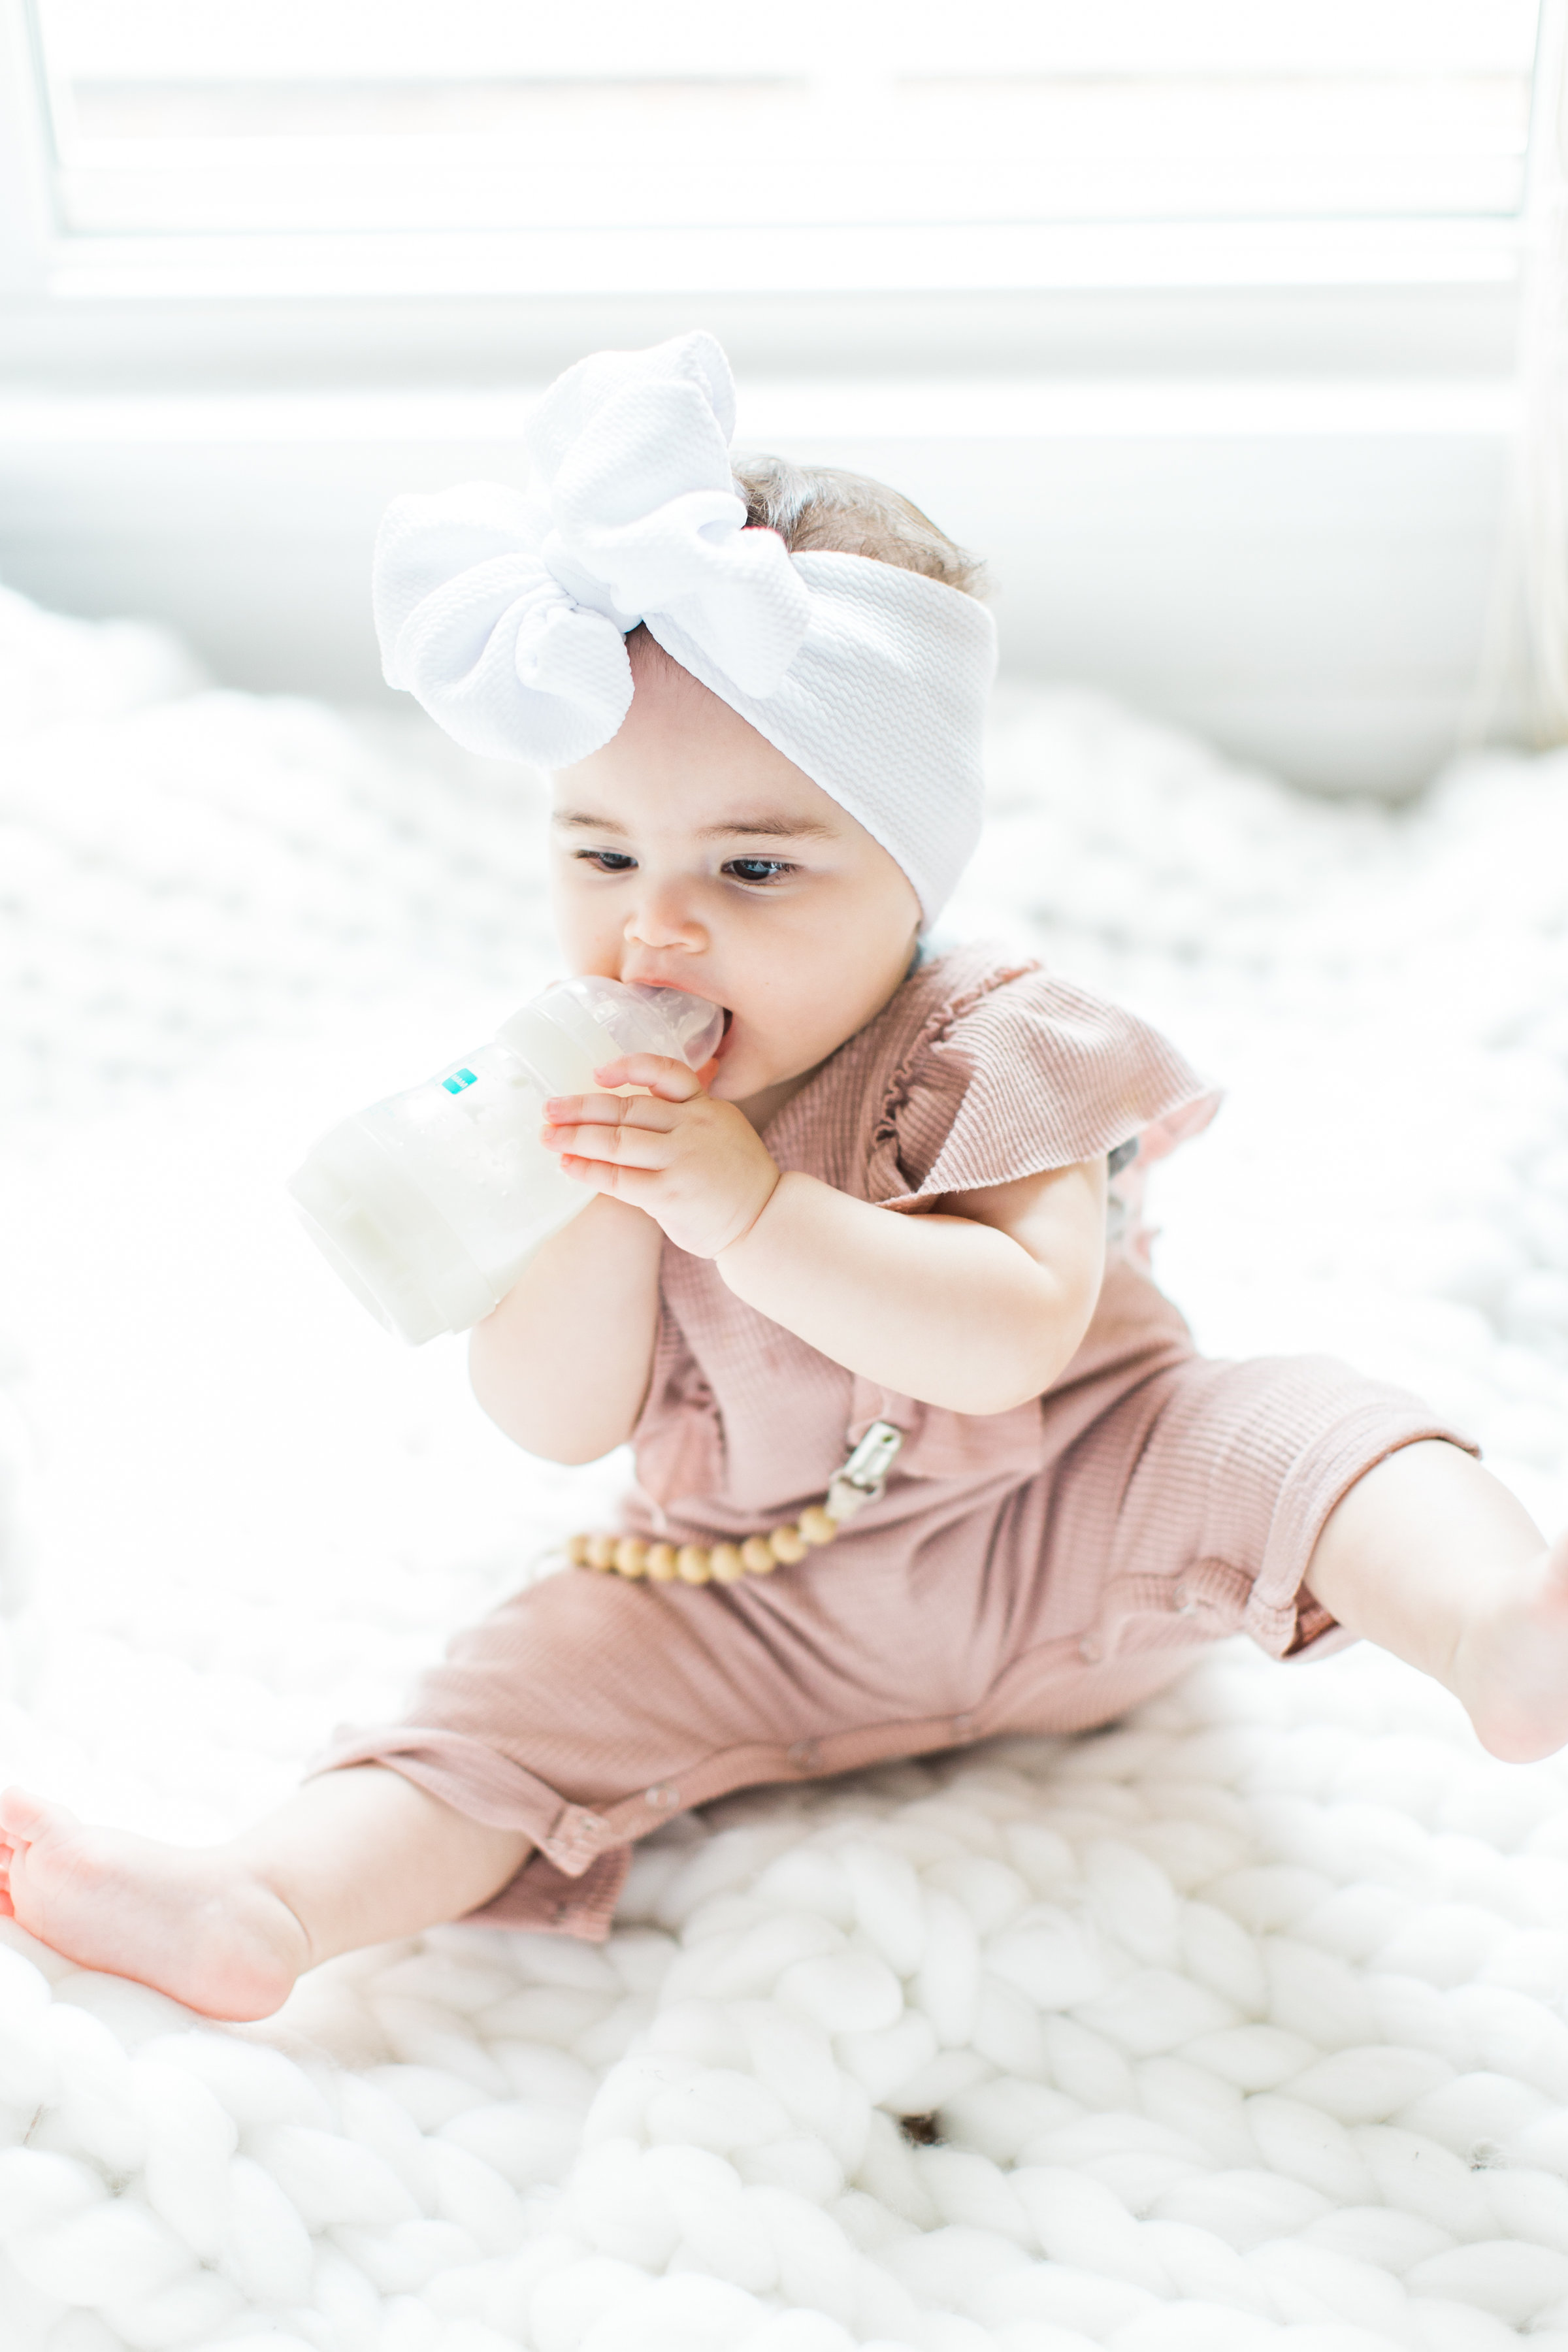 Having a baby with acid reflux can feel like the most exhausting uphill battle when you're a new parent. These are 7 tips and tricks for helping babies with reflux (that actually work!), plus a few hallmark signs that your baby does in fact have reflux. Click through for the details. #acidreflux #babyreflux #infantreflux #gerd #colic #howtotreatreflux | glitterinc.com | @glitterinc